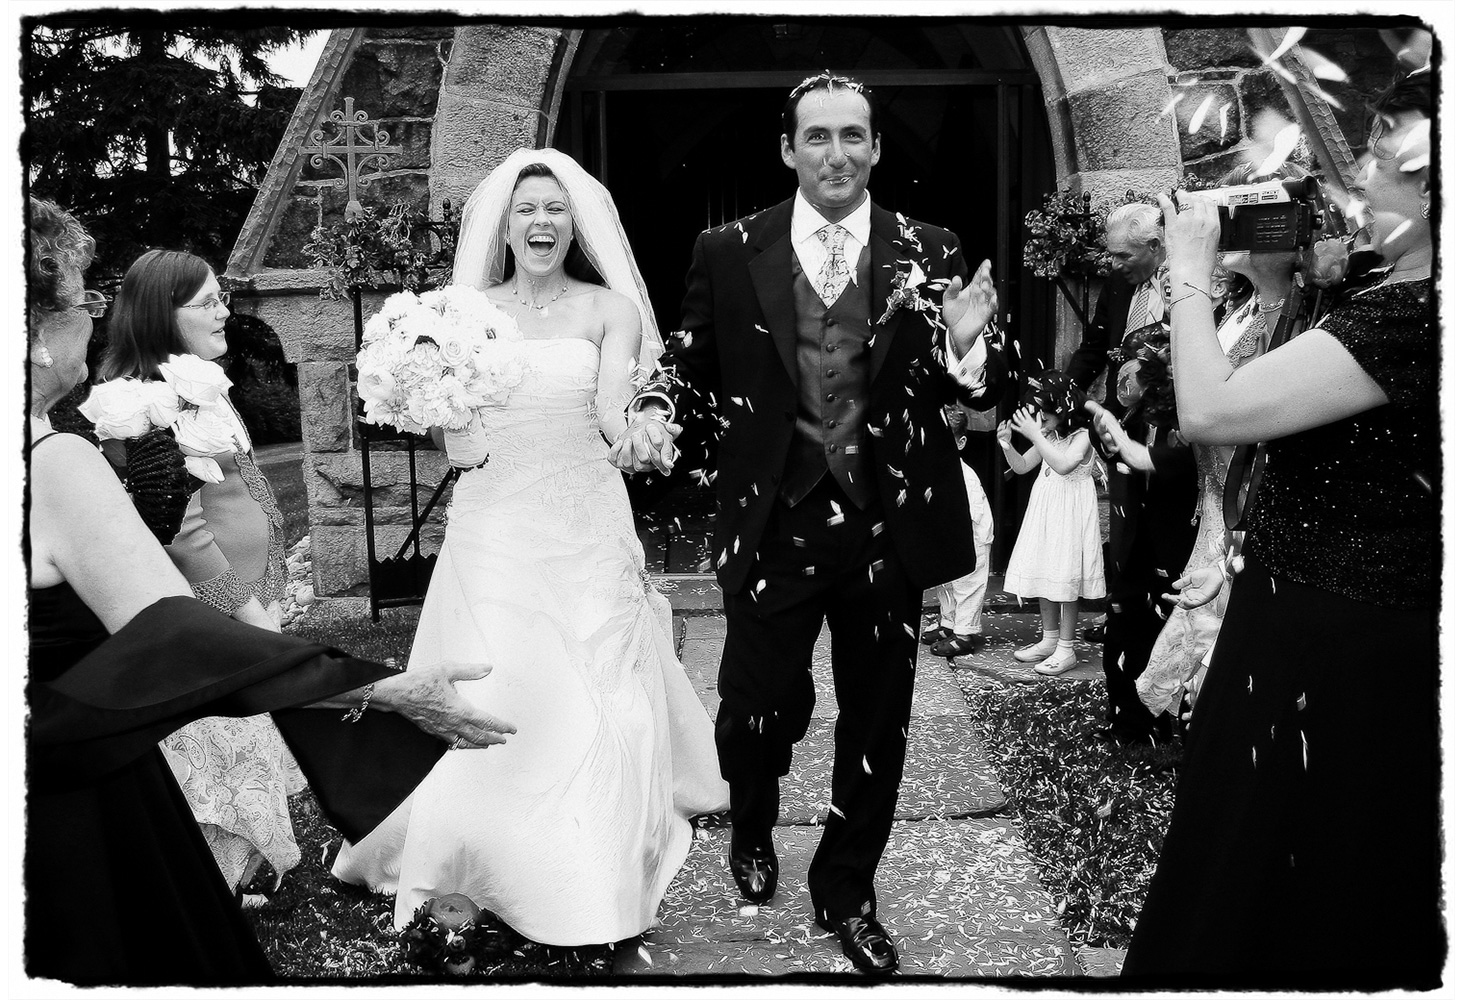 Guests cheer for the couple emerging from the small stone church after this summer ceremony in New Jersey.